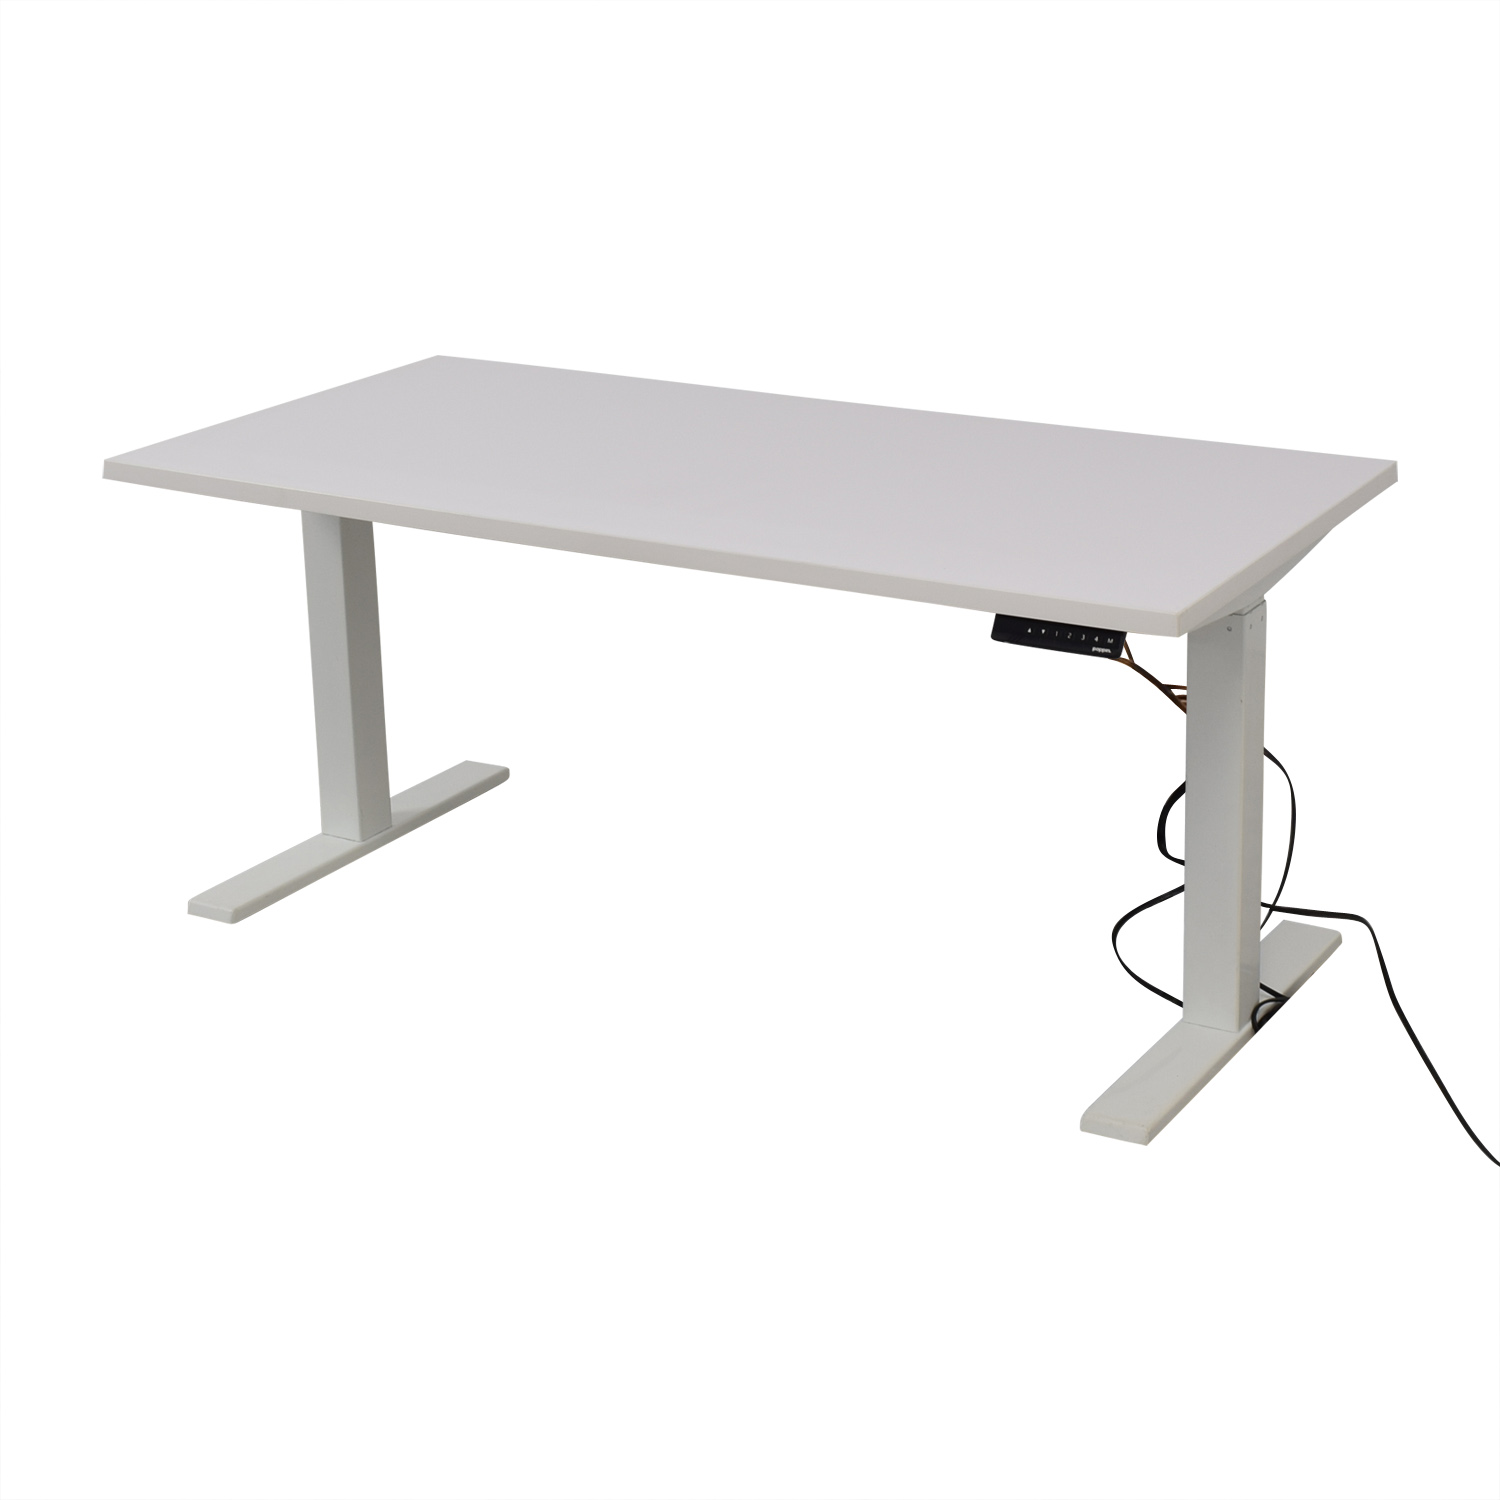 Poppin Poppin Series L Adjustable Height Single Desk coupon